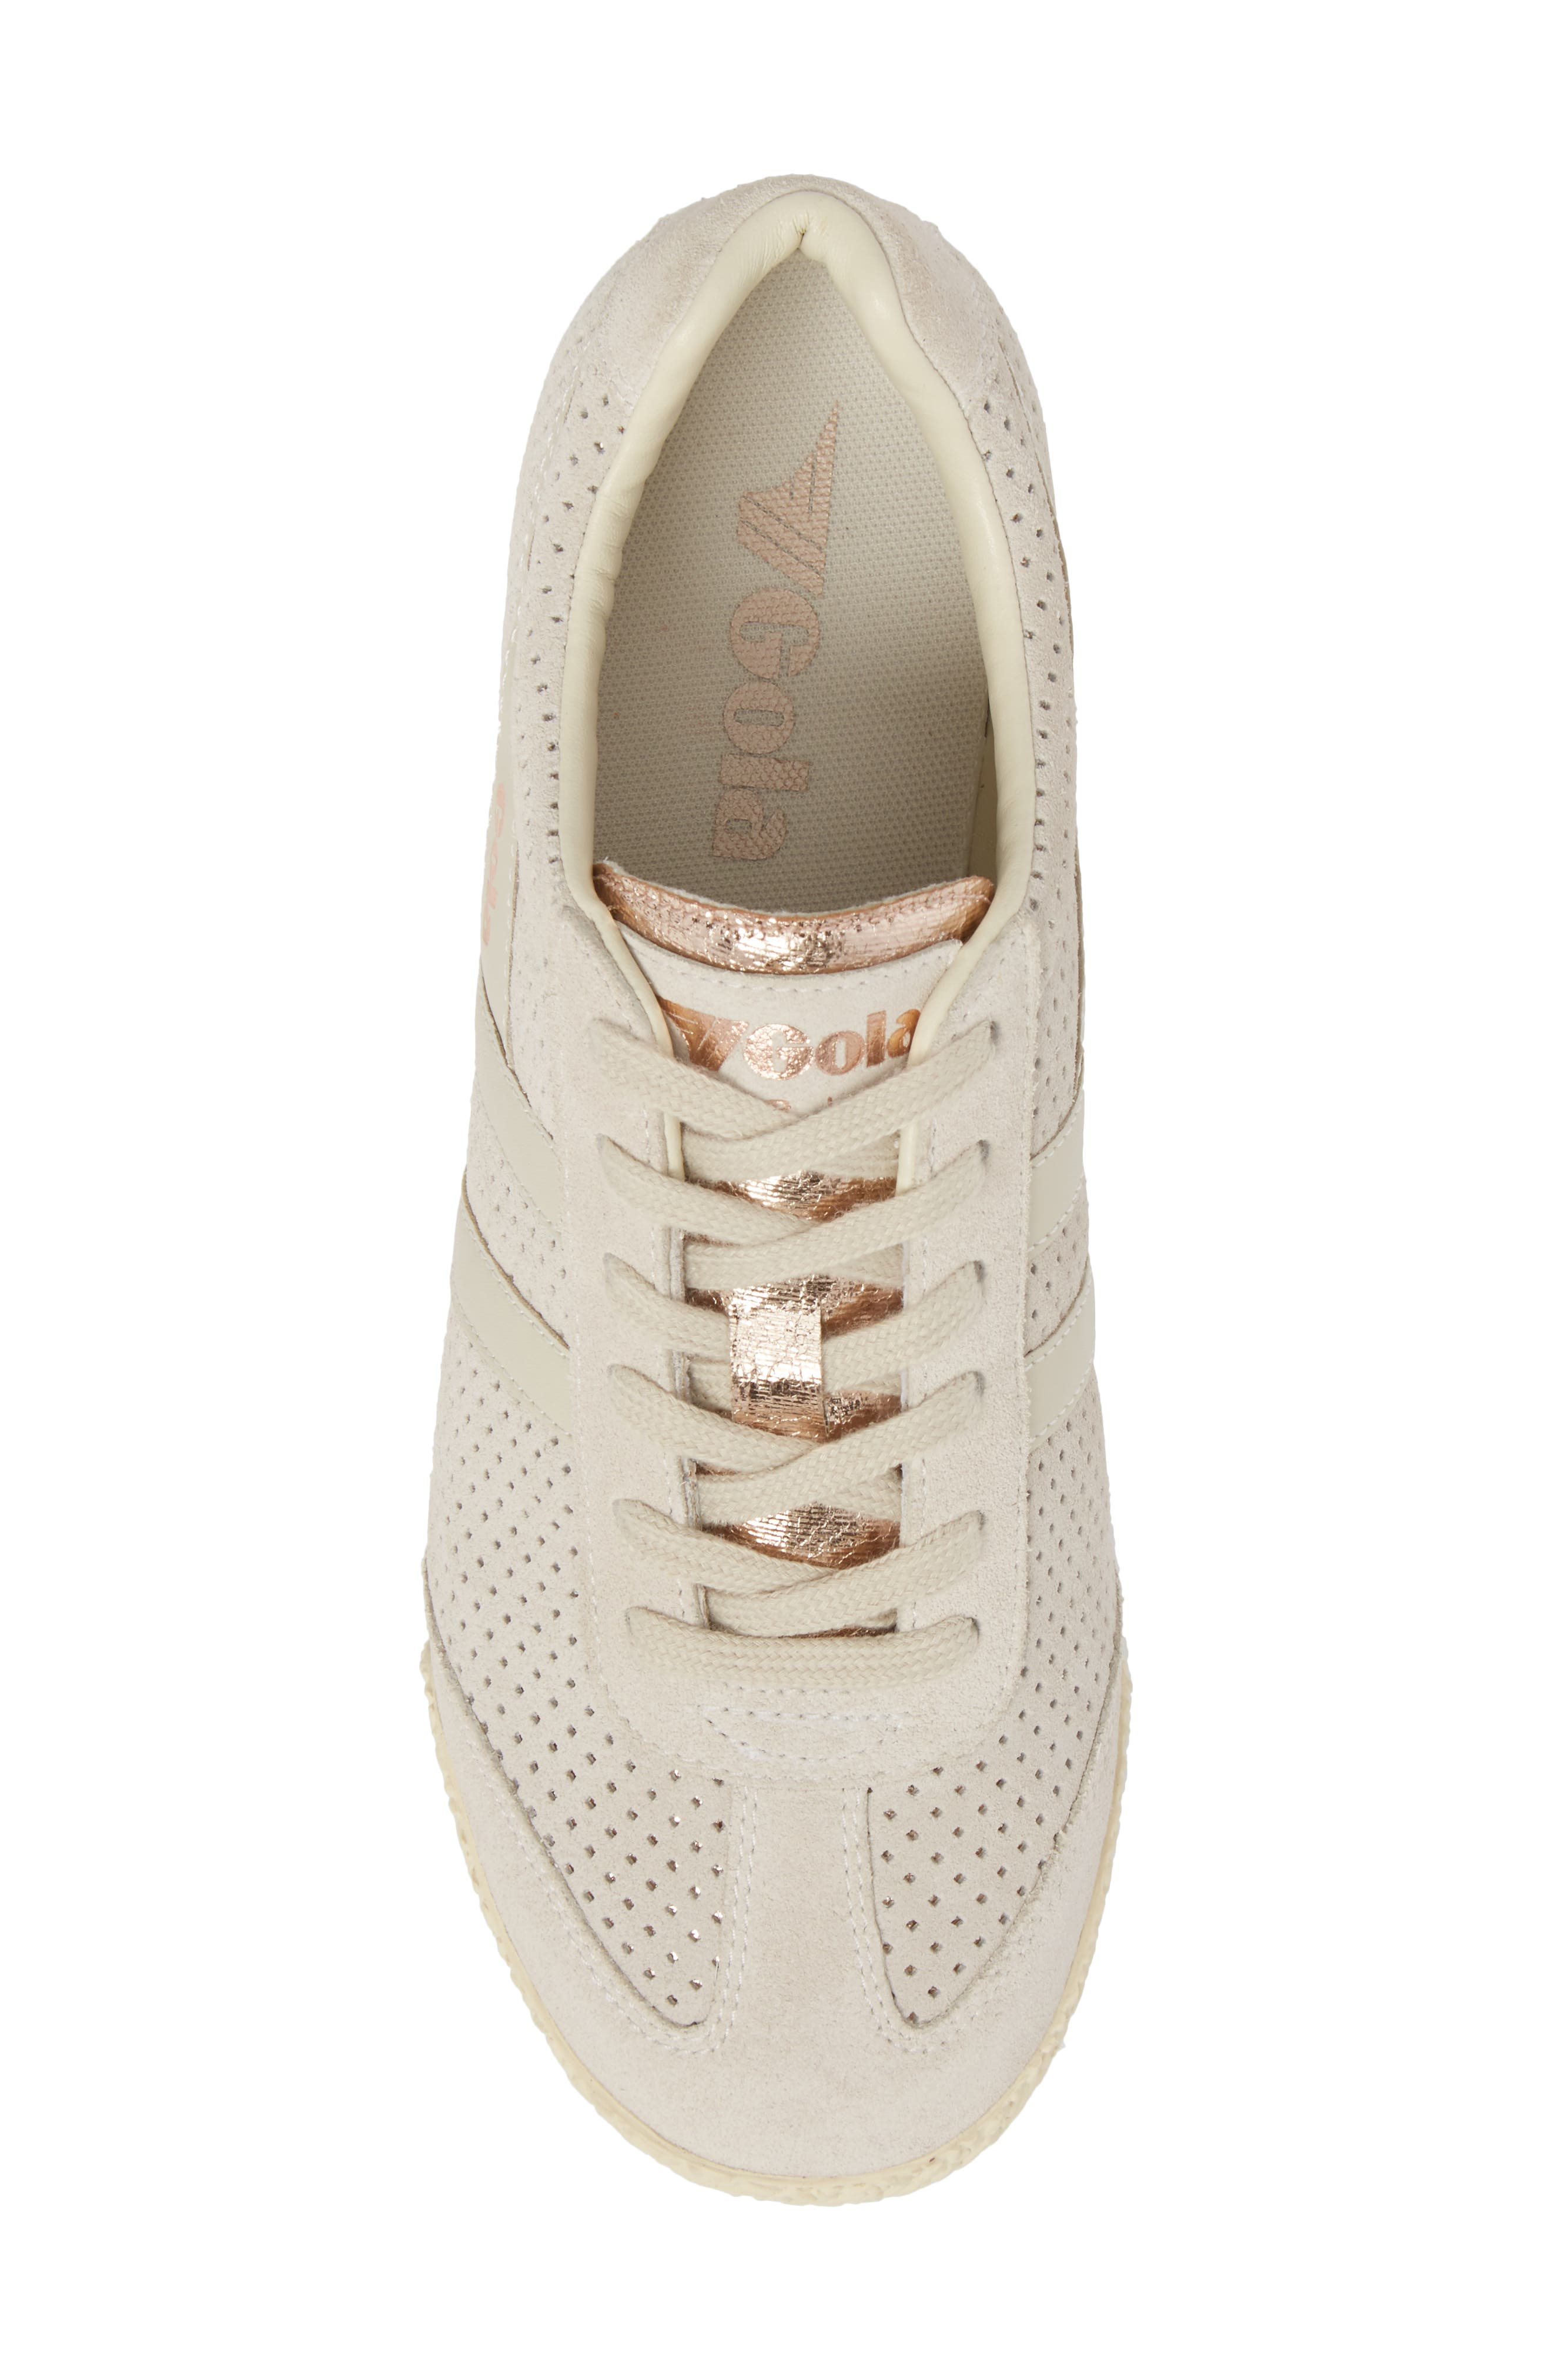 Harrier Glimmer Suede Low Top Sneaker,                             Alternate thumbnail 5, color,                             WINDCHIME/ GOLD/ OFF WHITE